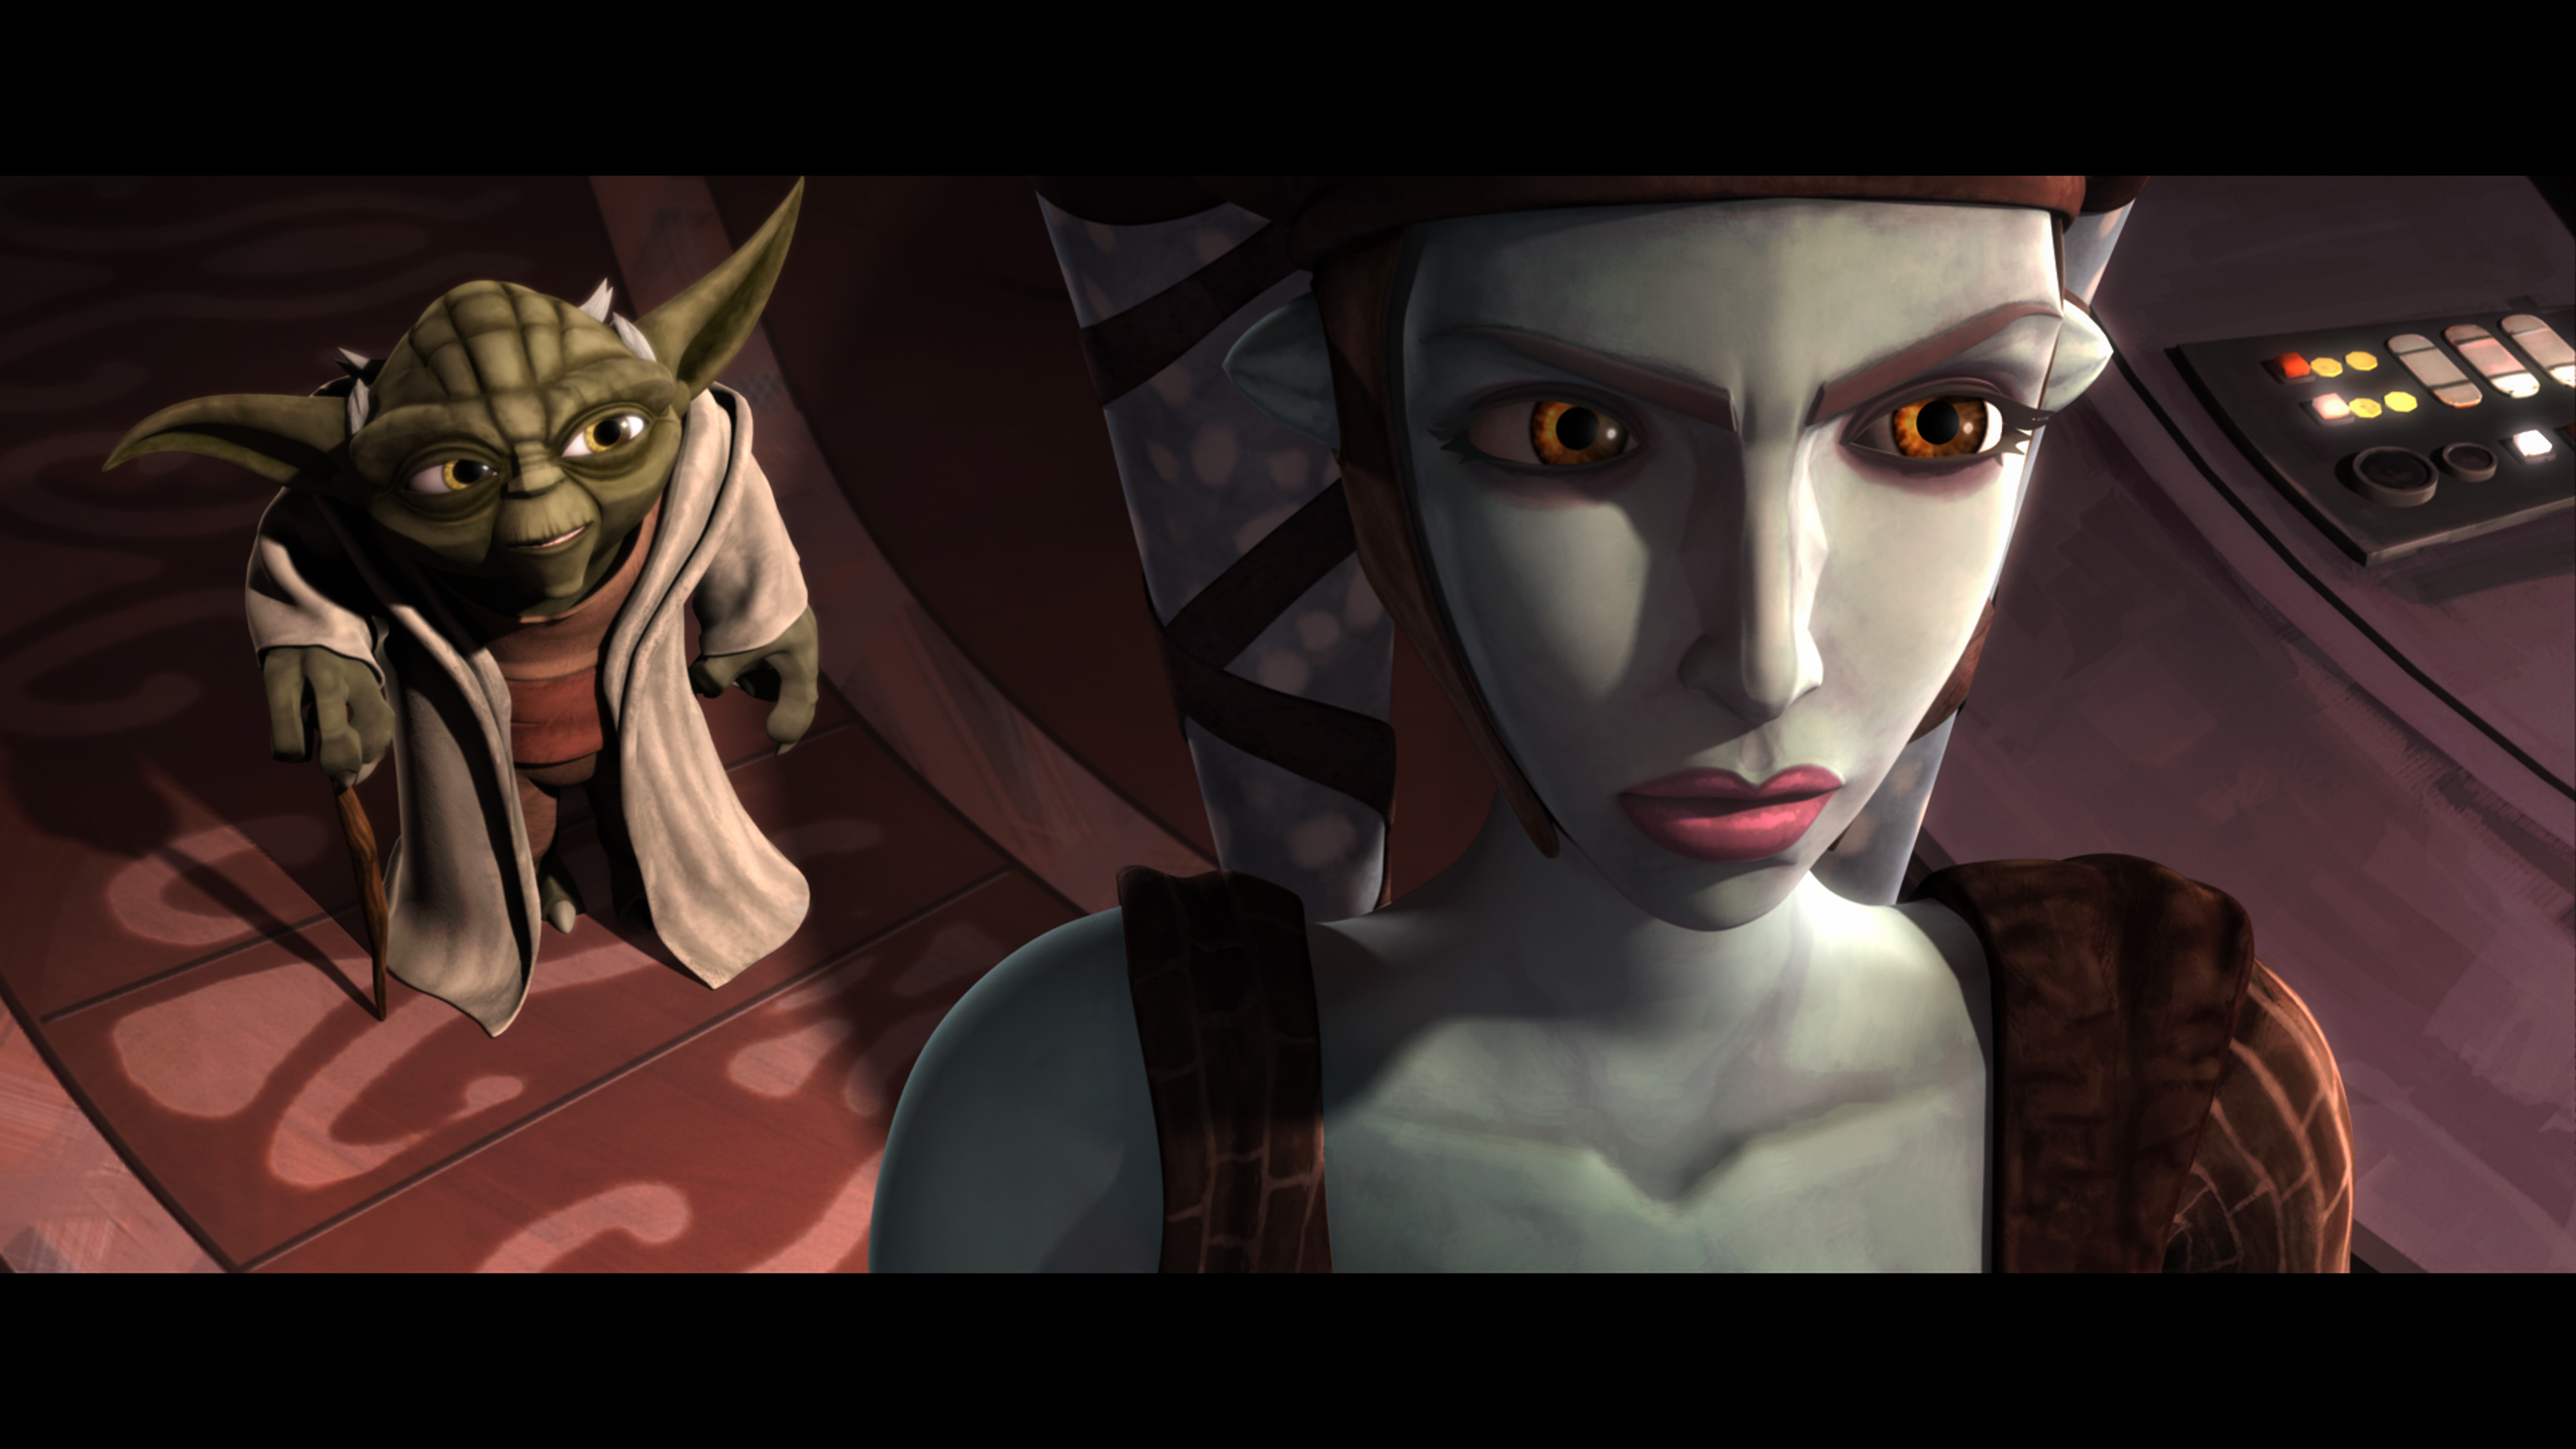 aayla_in the clonewars